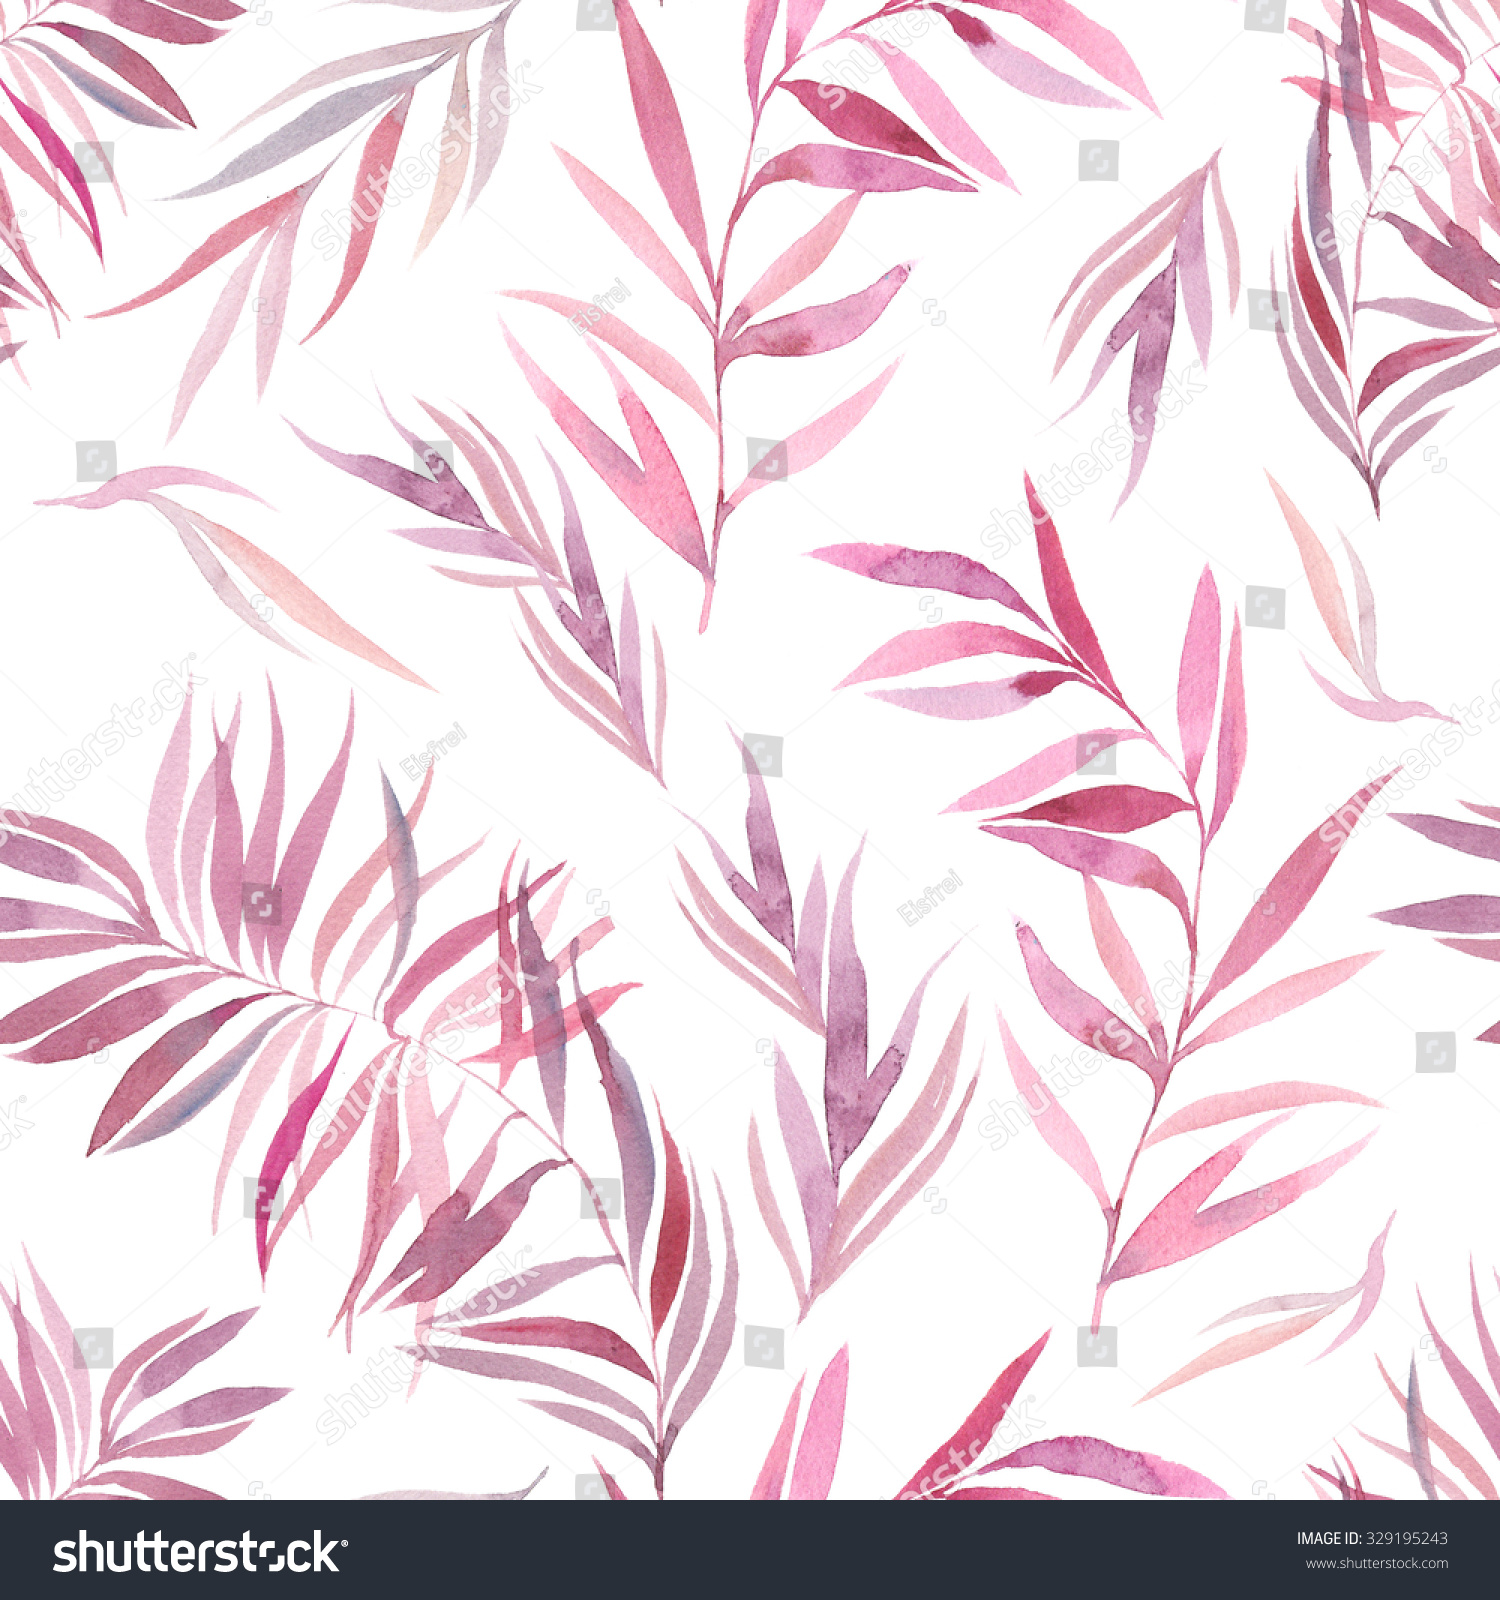 Watercolor pink purple palm tree branches stock - White painted tree branches ...